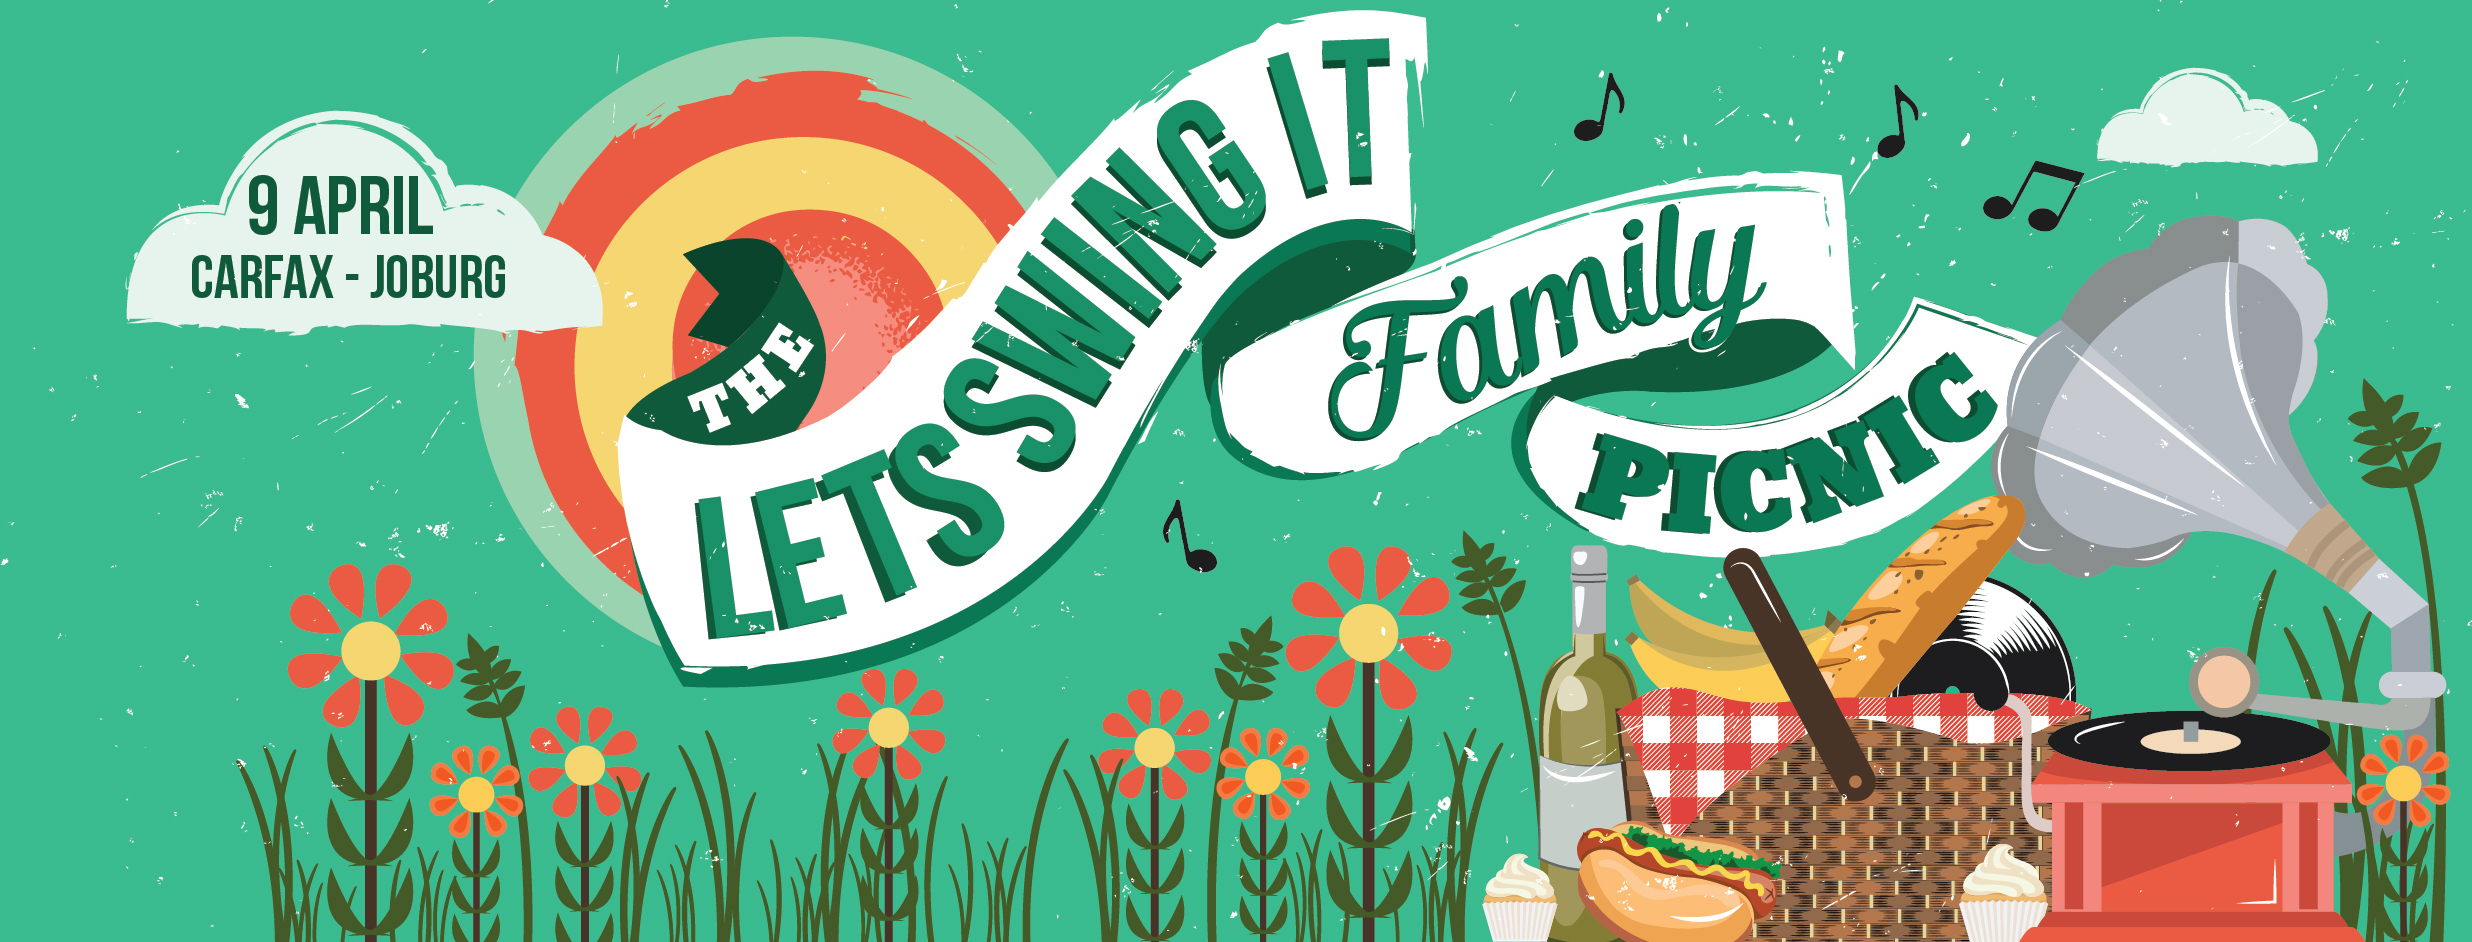 Let's Swing It Family Picnic – Win tickets!